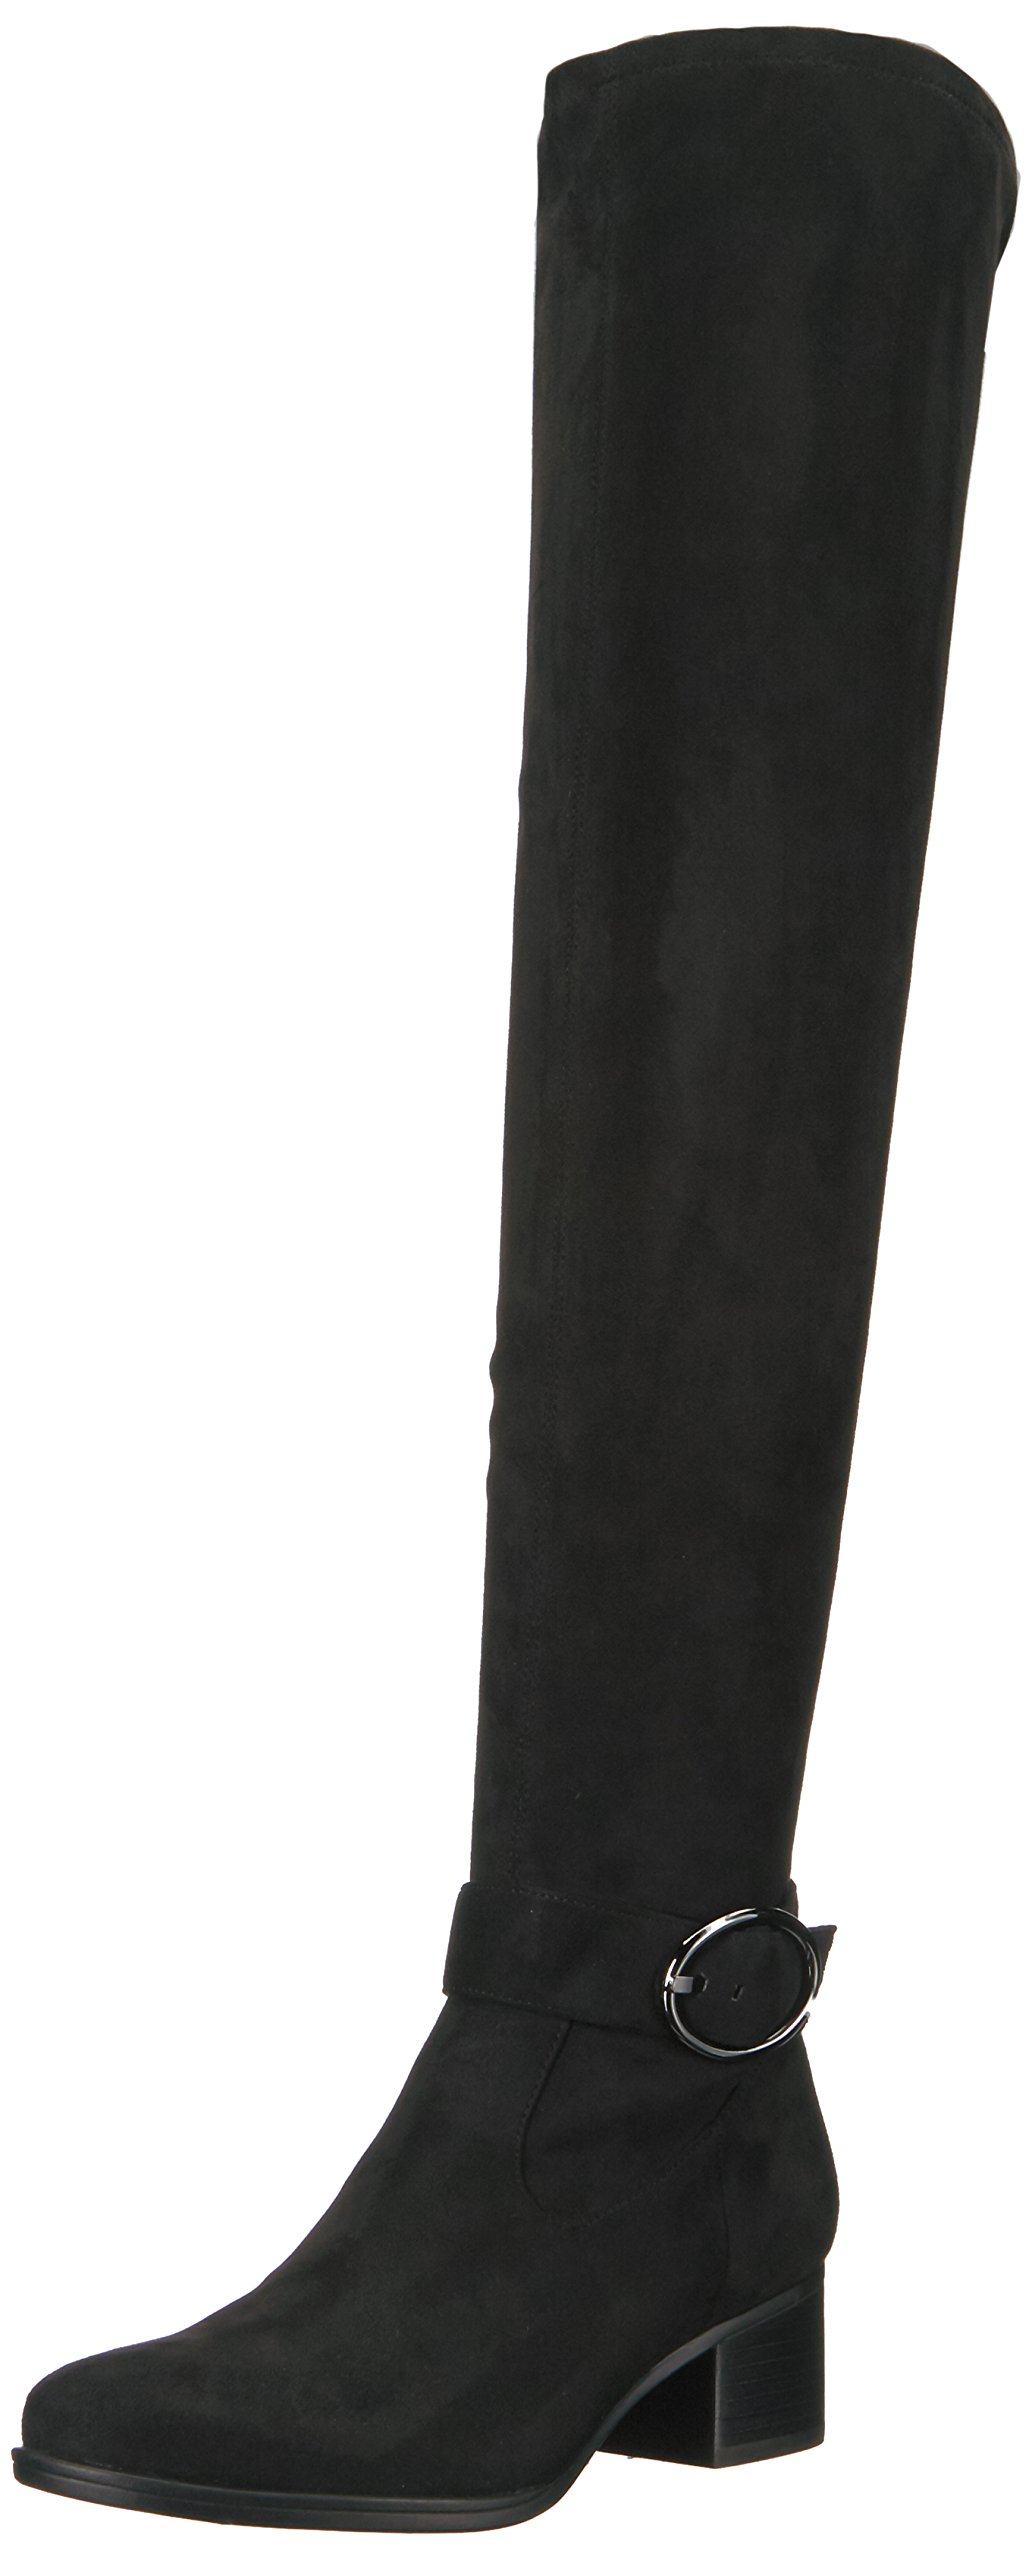 Naturalizer Women's Dayln Slouch Boot, Black, 12 M US